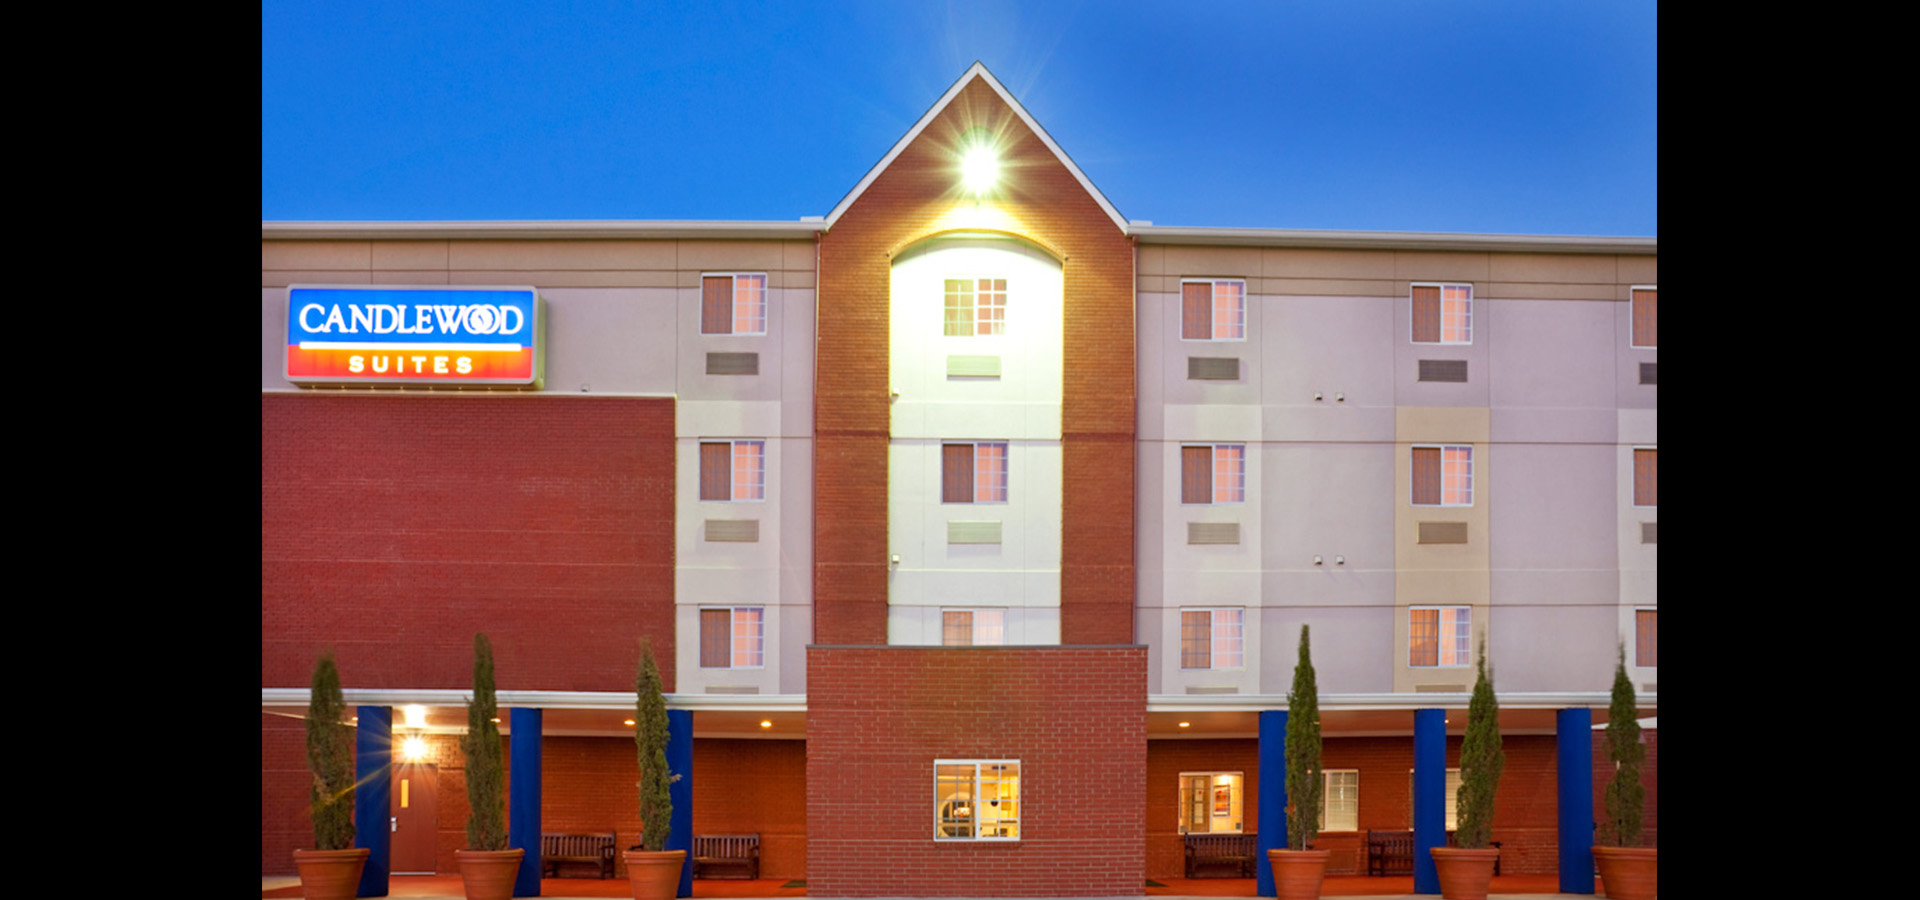 Candlewood Suites DFW South_13